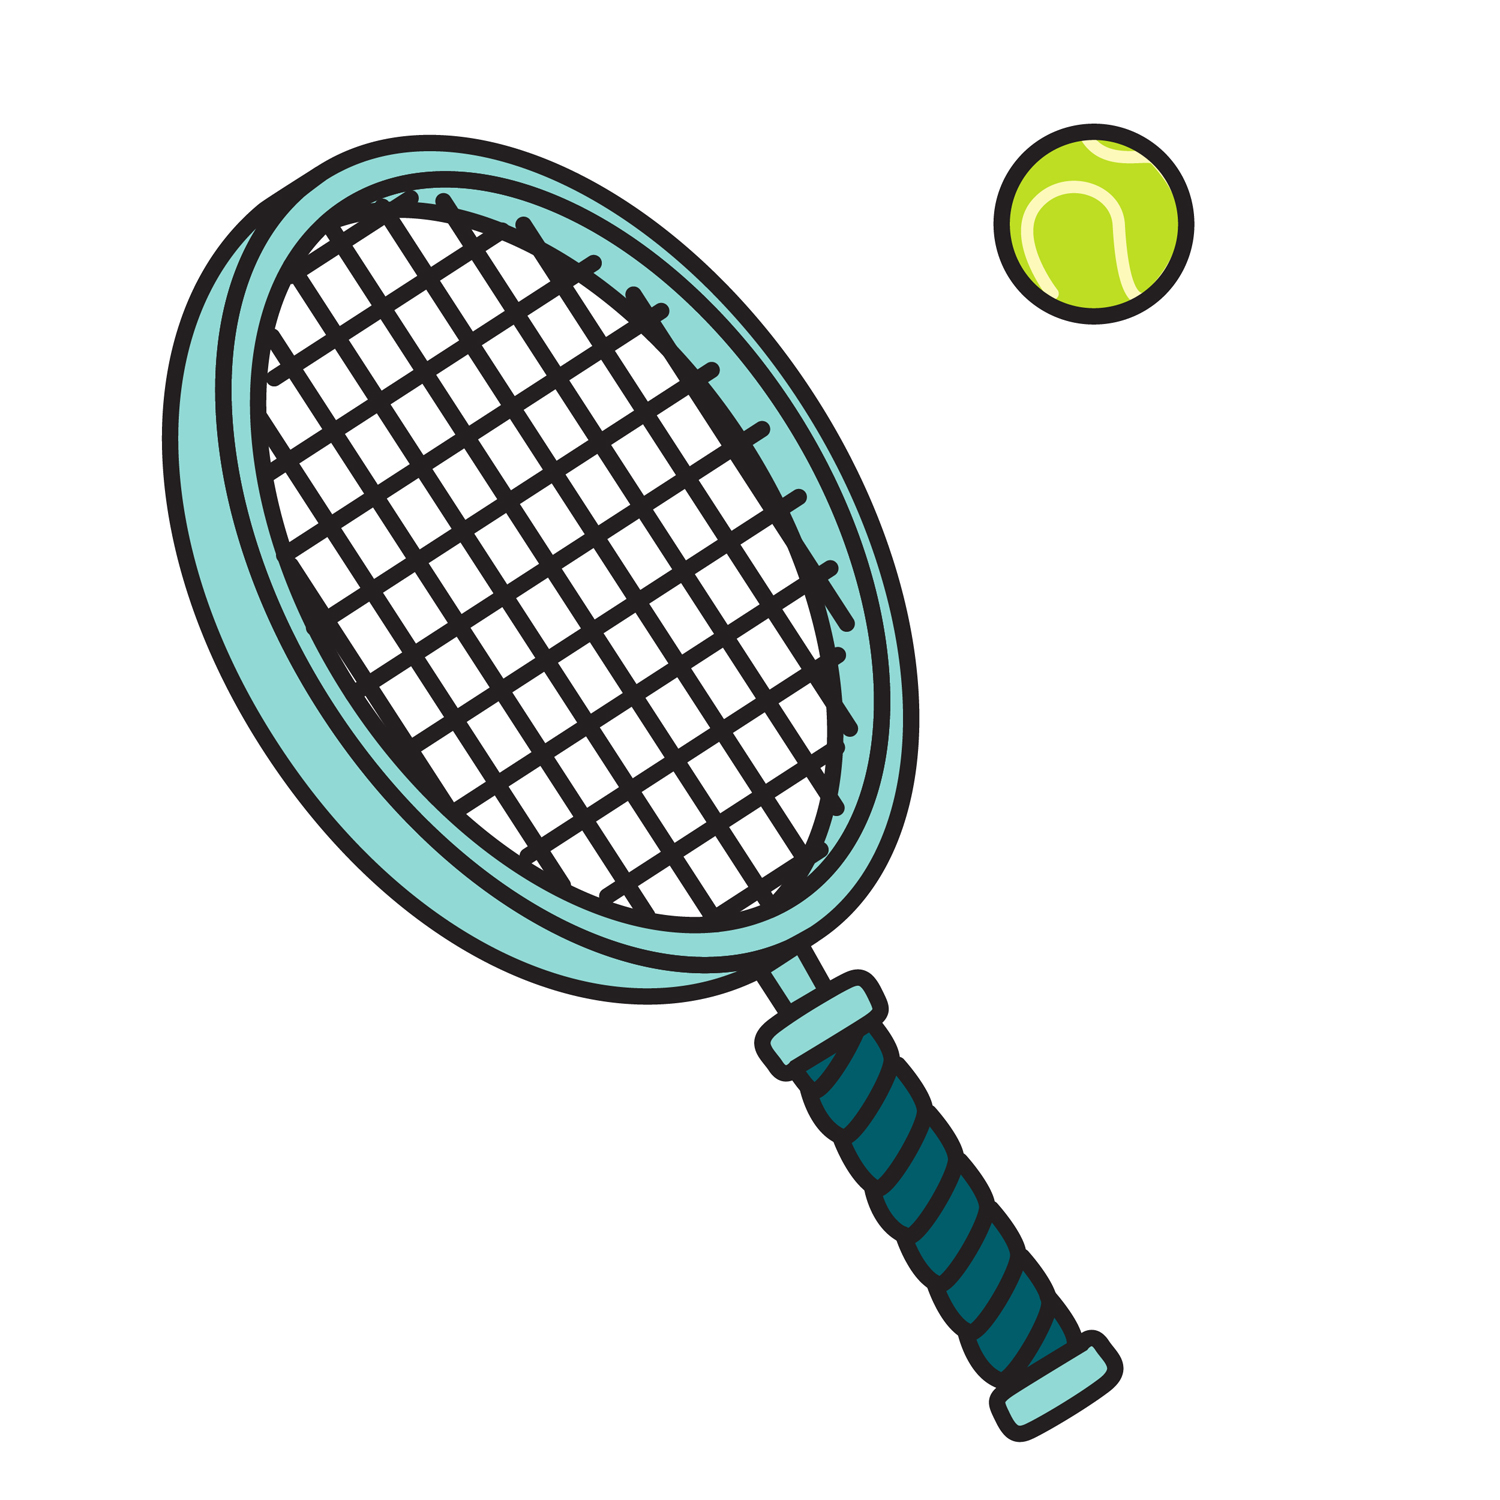 14 Tennis Racket And Ball Vector Images